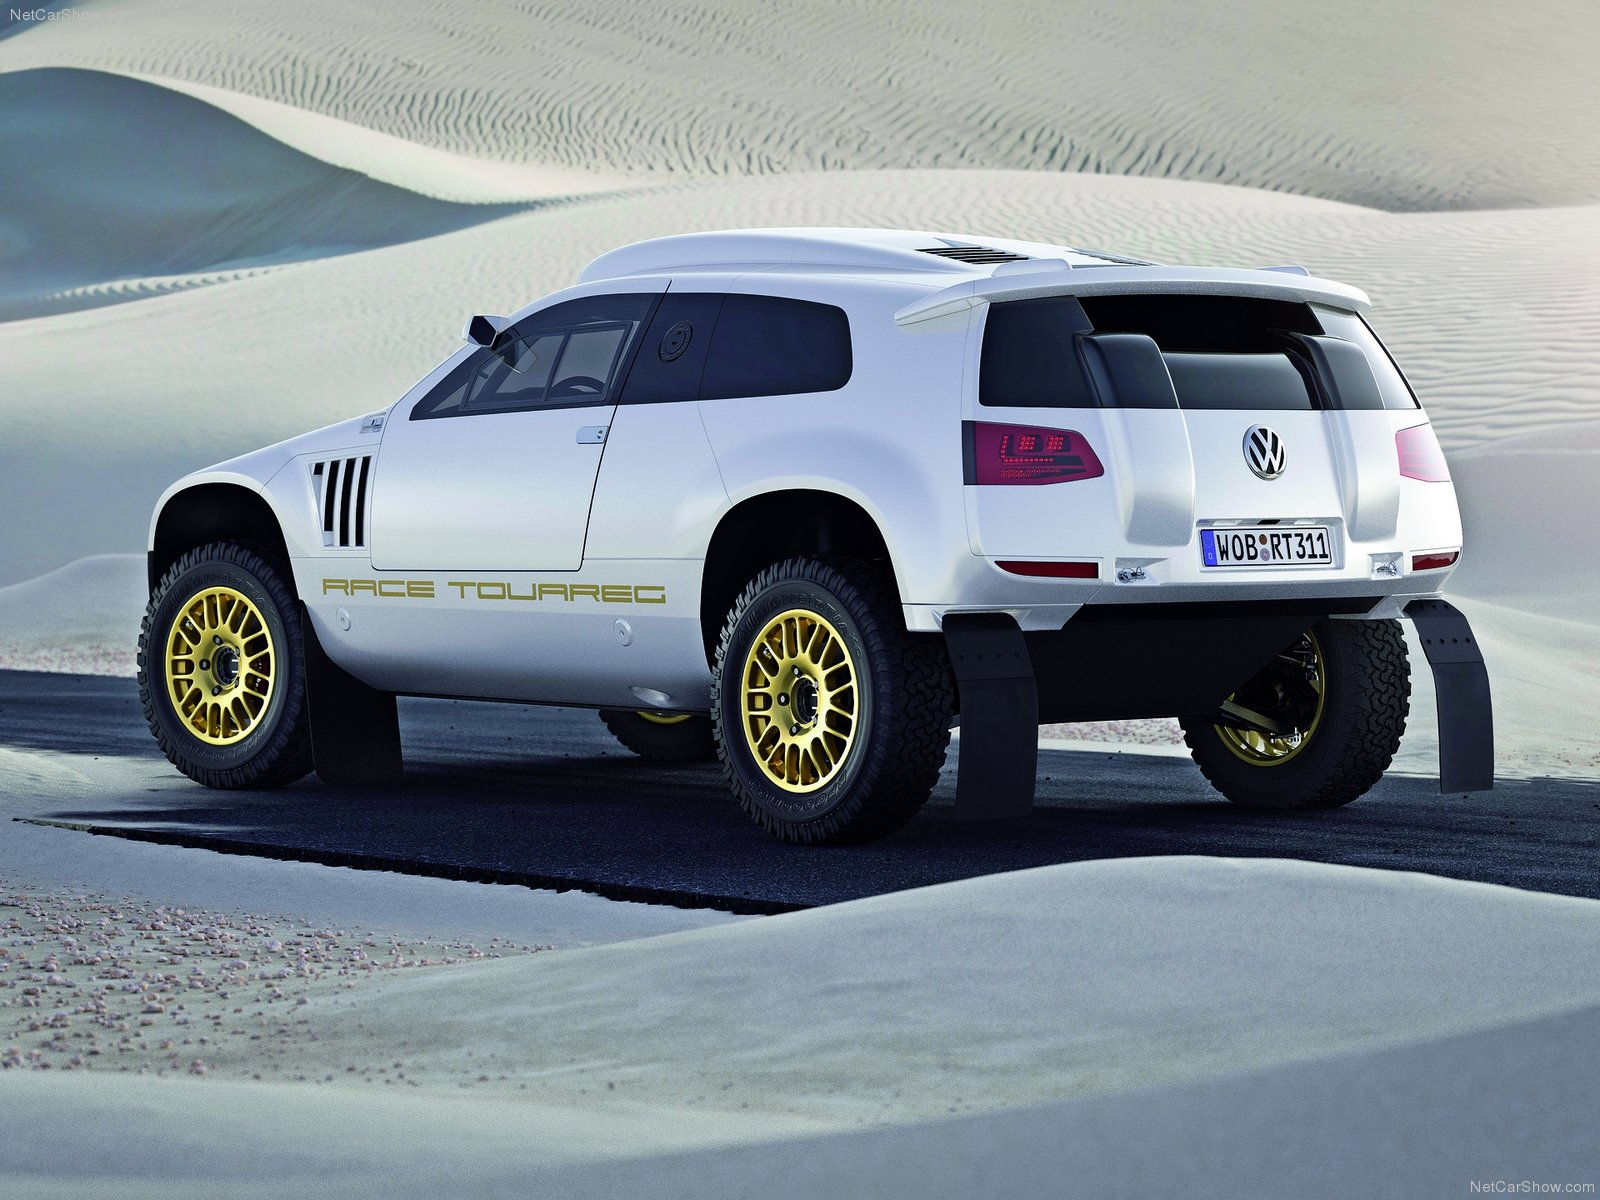 Volkswagen Race-Touareg 3 Qatar Concept photo 77899